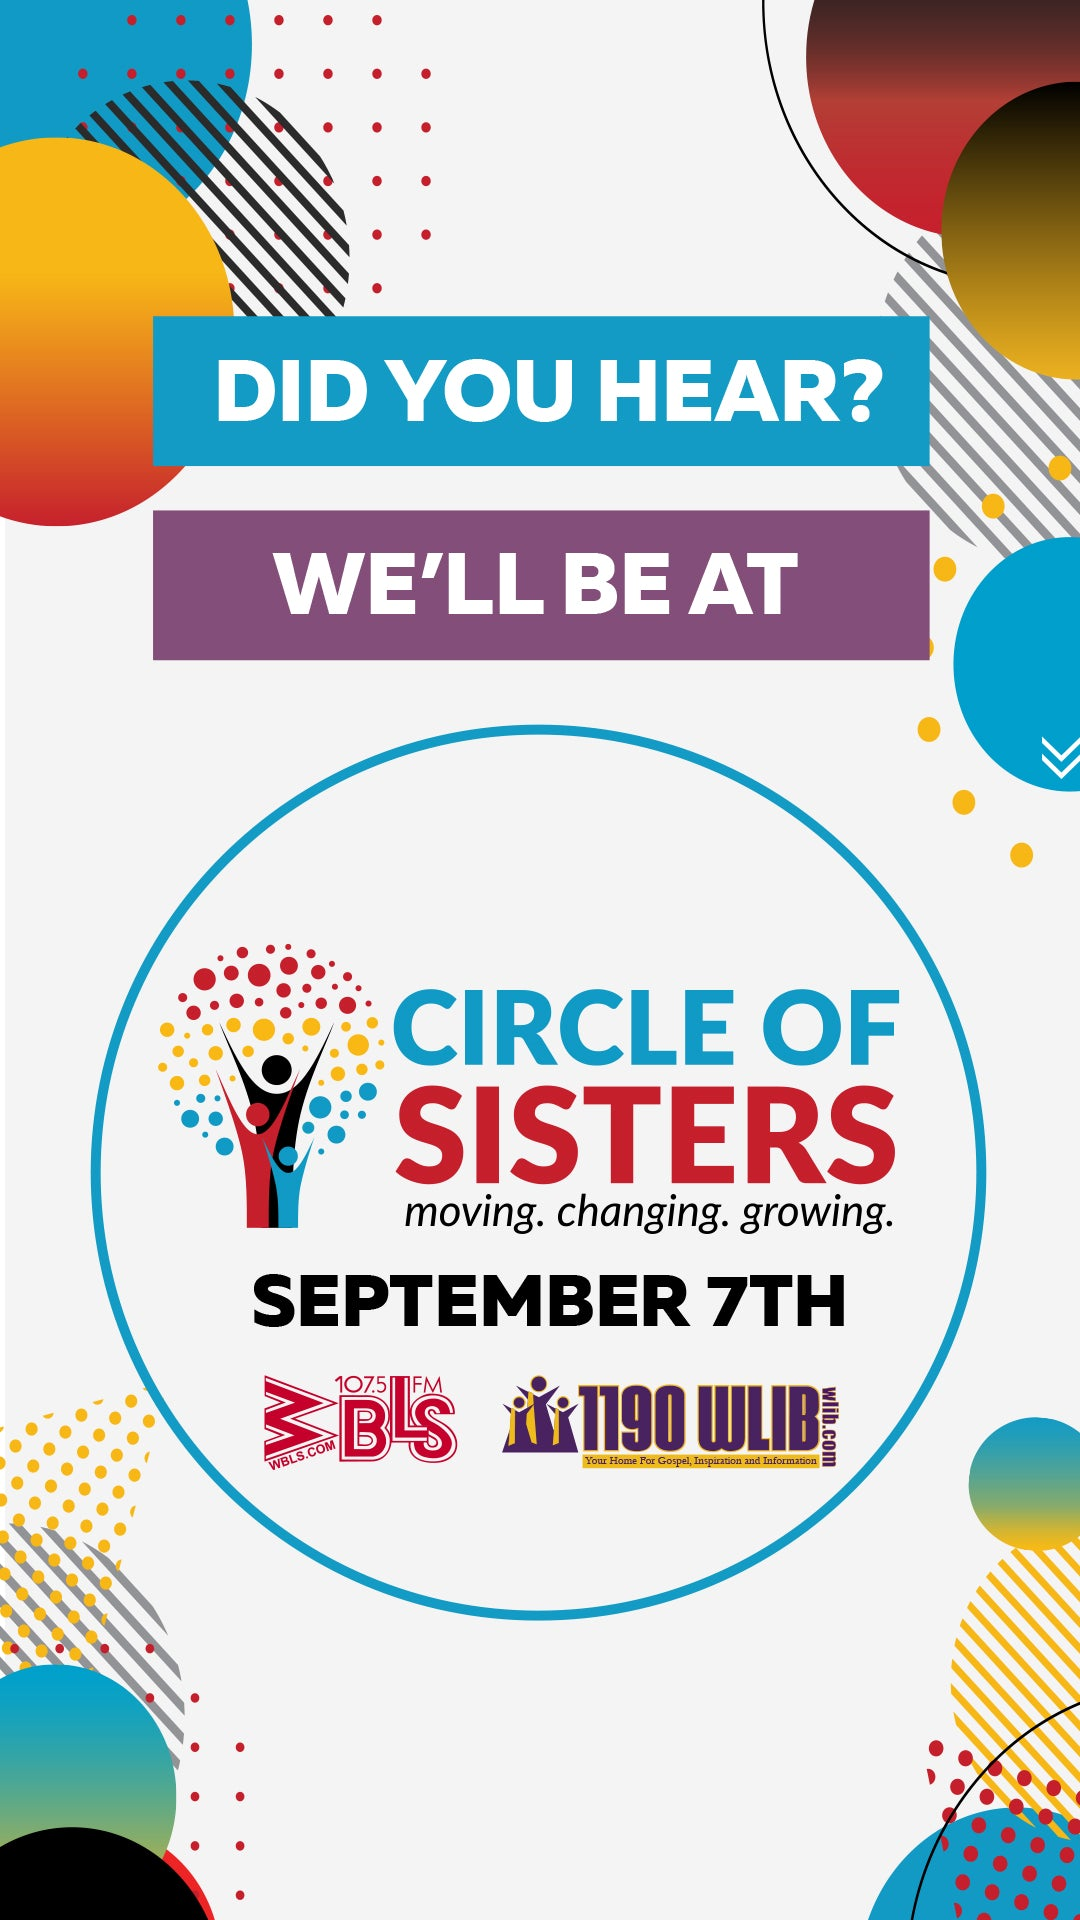 WE ARE IN Circle of Sisters September 7th